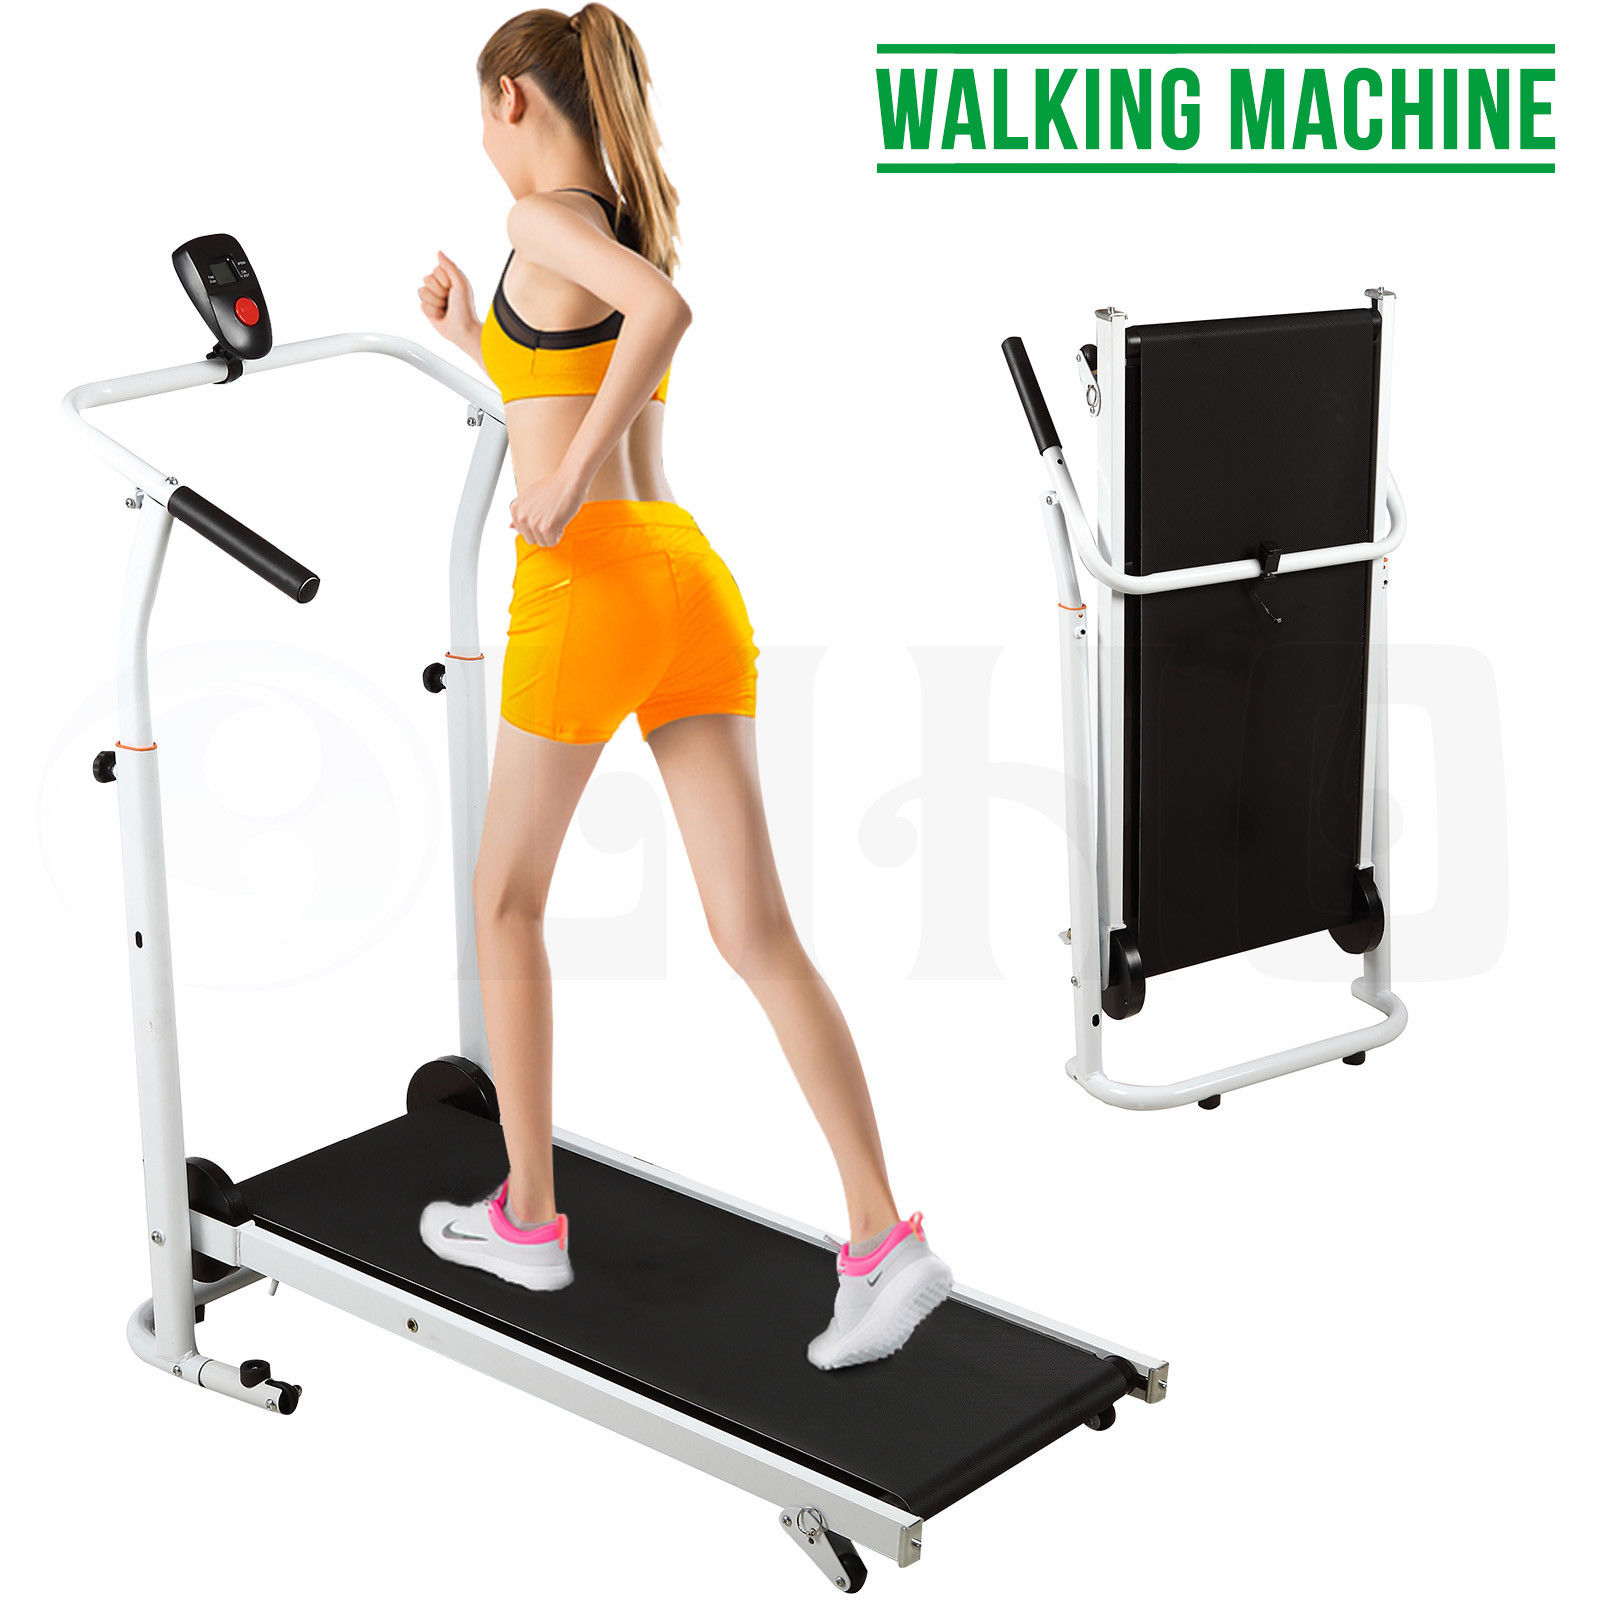 Portable Folding Non-electric Treadmill Manual Treadmill Incline Walking Running Fitness Gym Machine